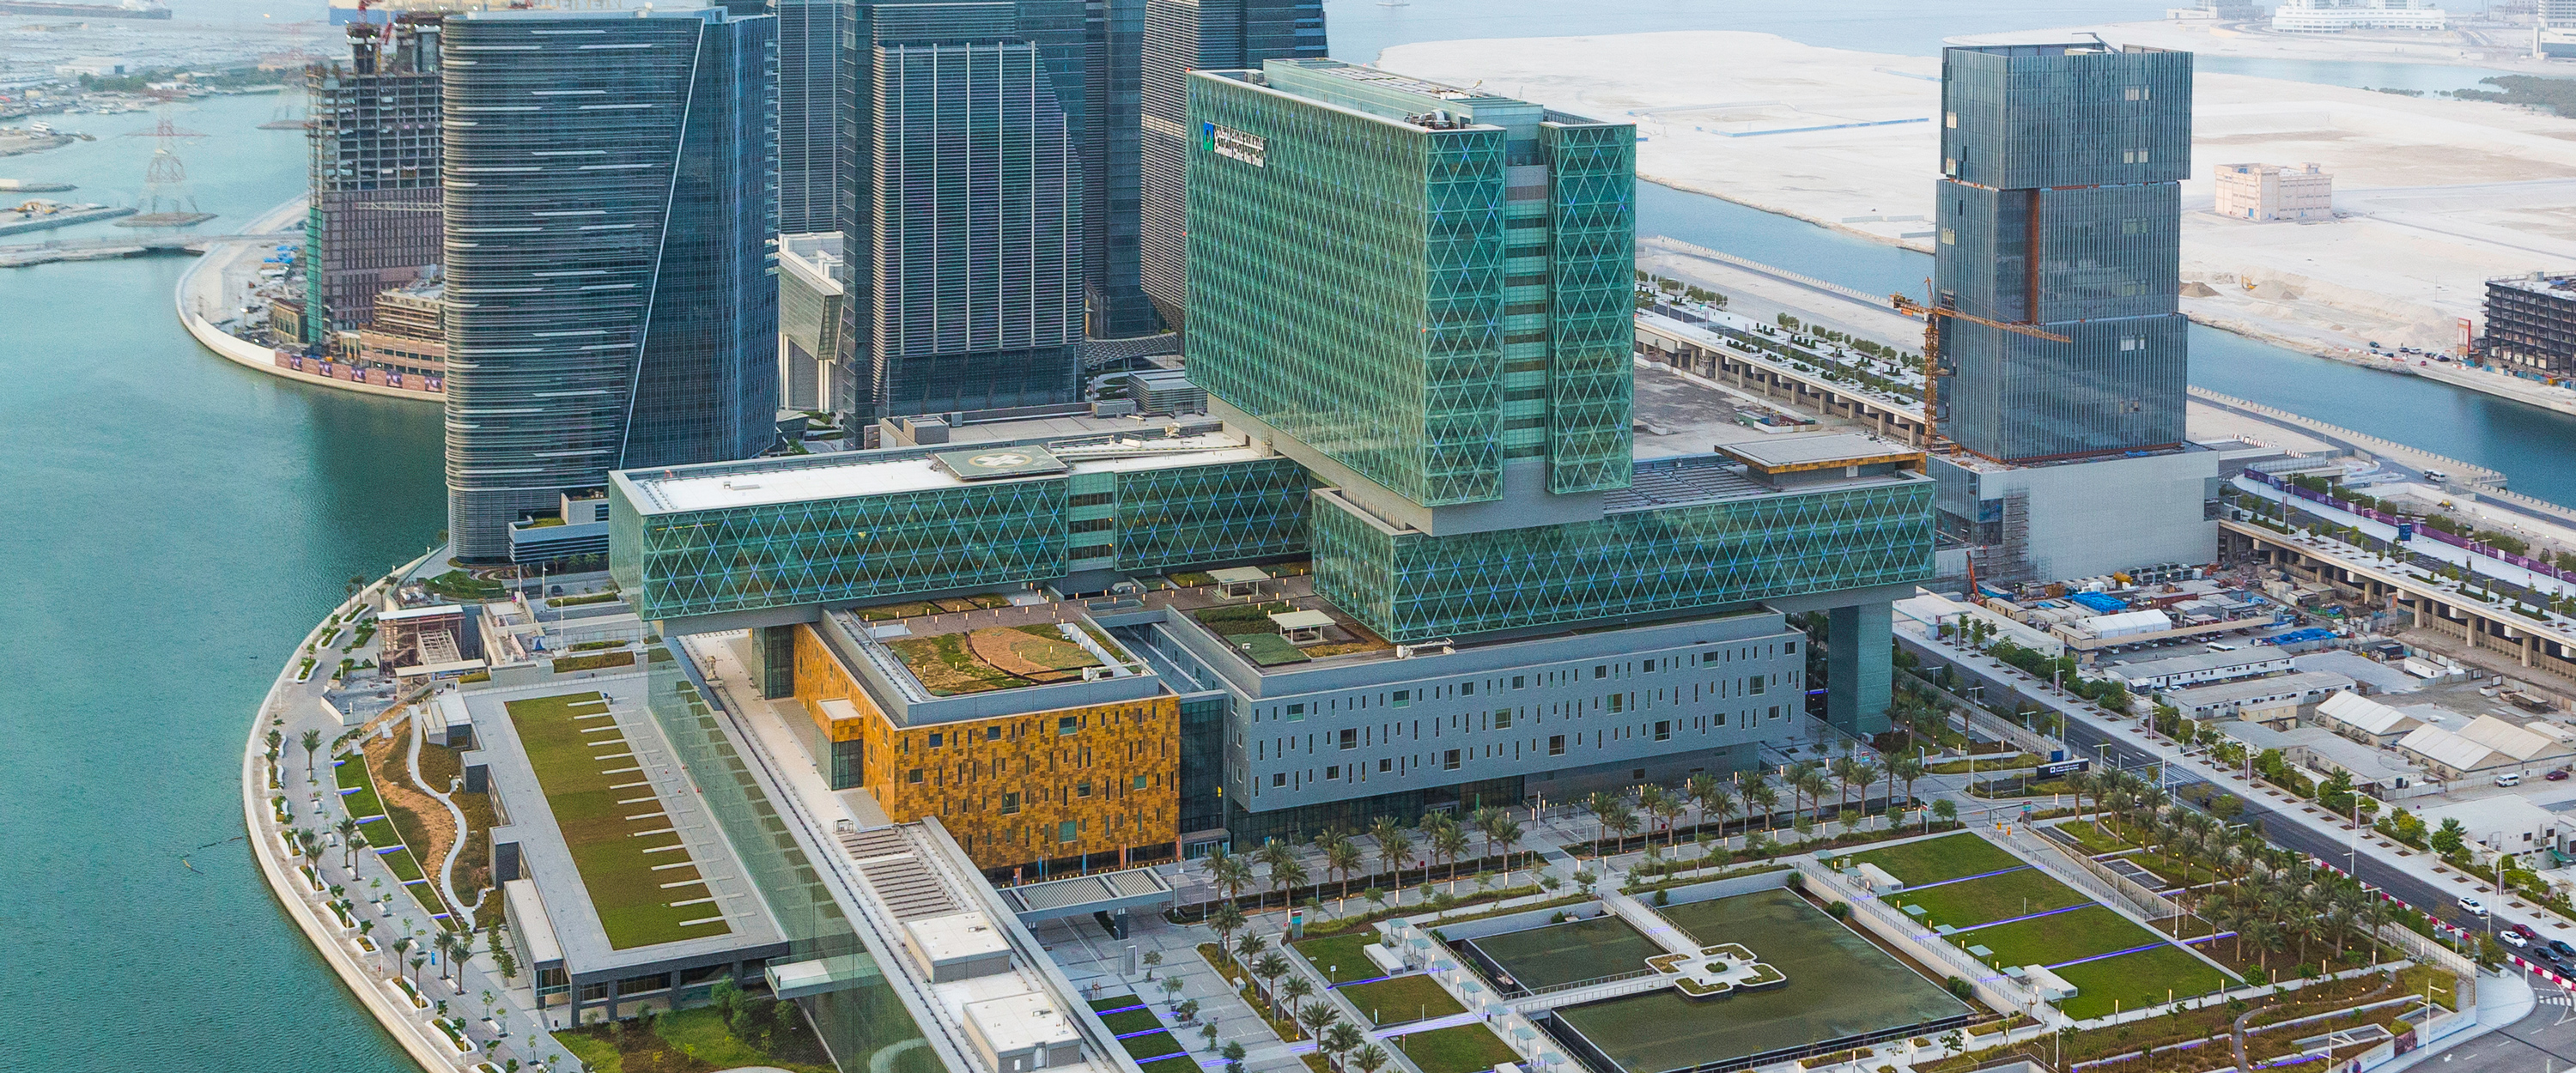 Cleveland Clinic - Six Construct